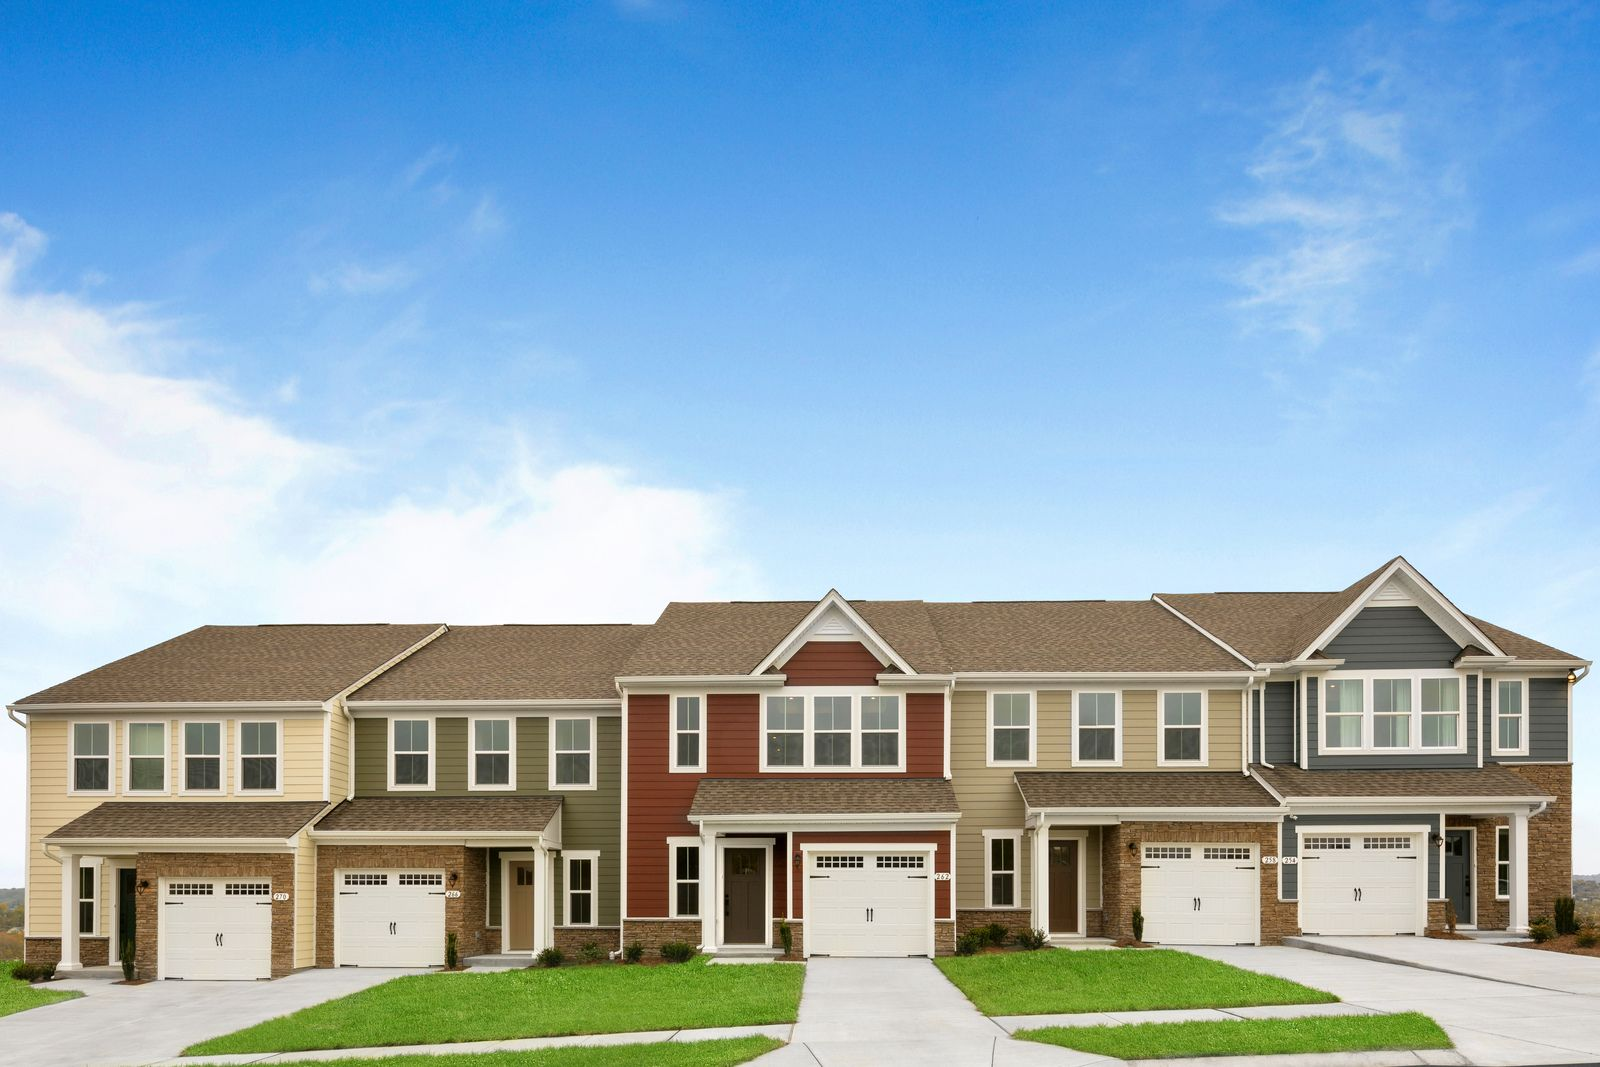 Welcome Home to Grove Pointe:The most convenient new community to Pittsburgh, near the T-Station & Cool Springs. Townhomes and 1st-floor living.Click hereto schedule an appointment.